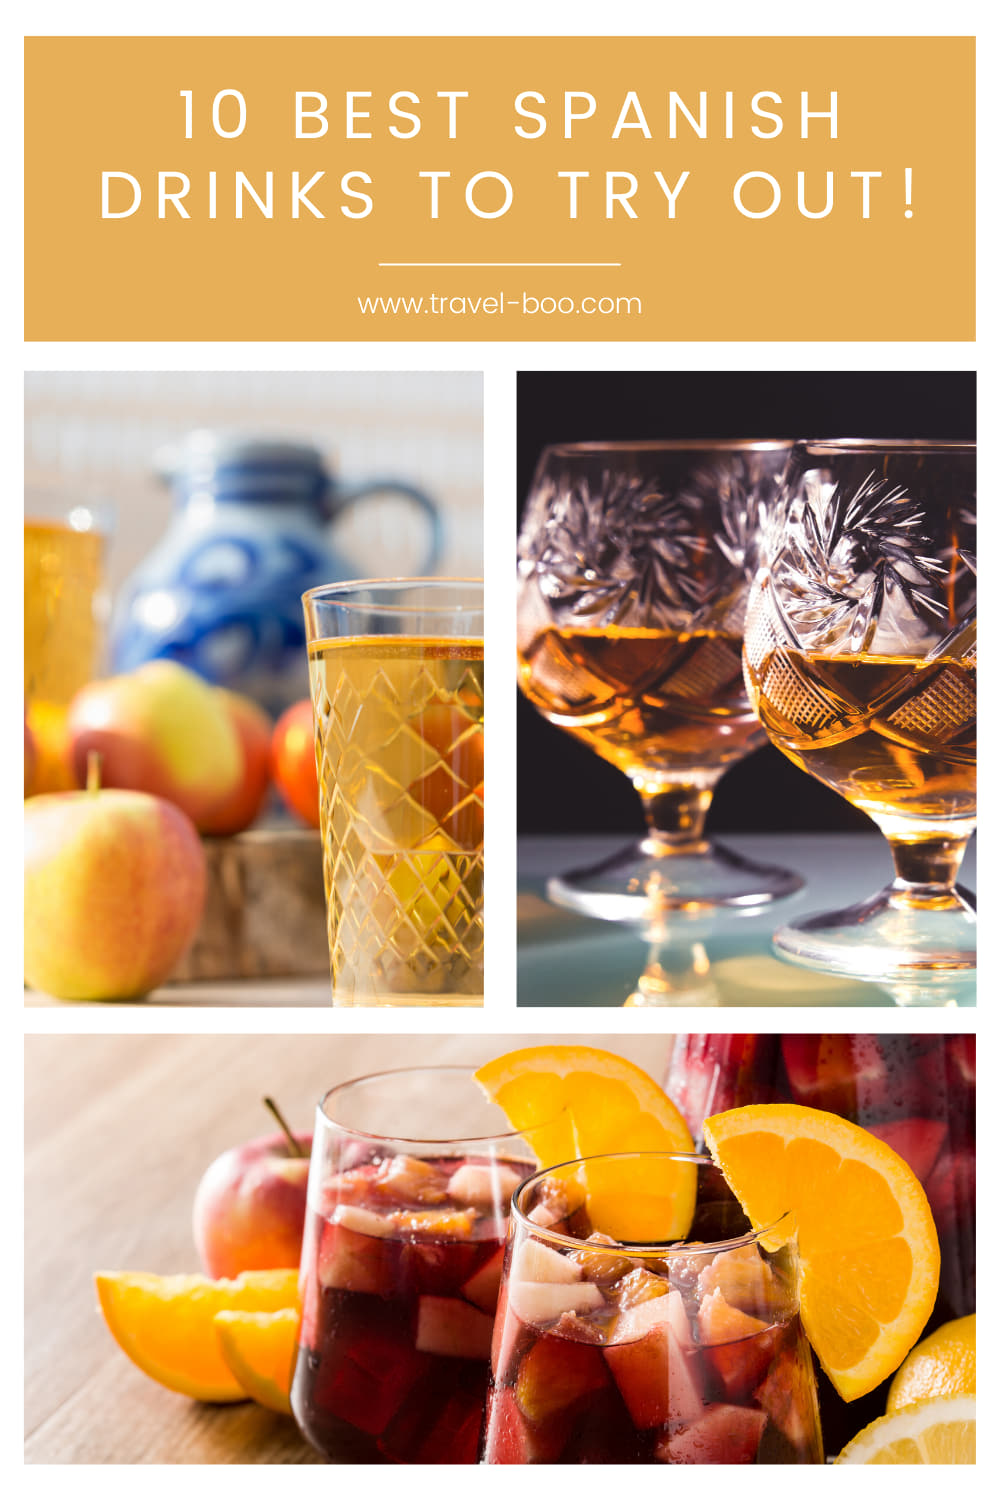 10 Best Spanish Drinks to try out when Visiting Spain! Spain Travel, Spanish Drinks, Spain Travel Itinerary, Spain Travel Tips, Spanish Travel Itinerary, Spain Itinerary, Spain Travel Guide.